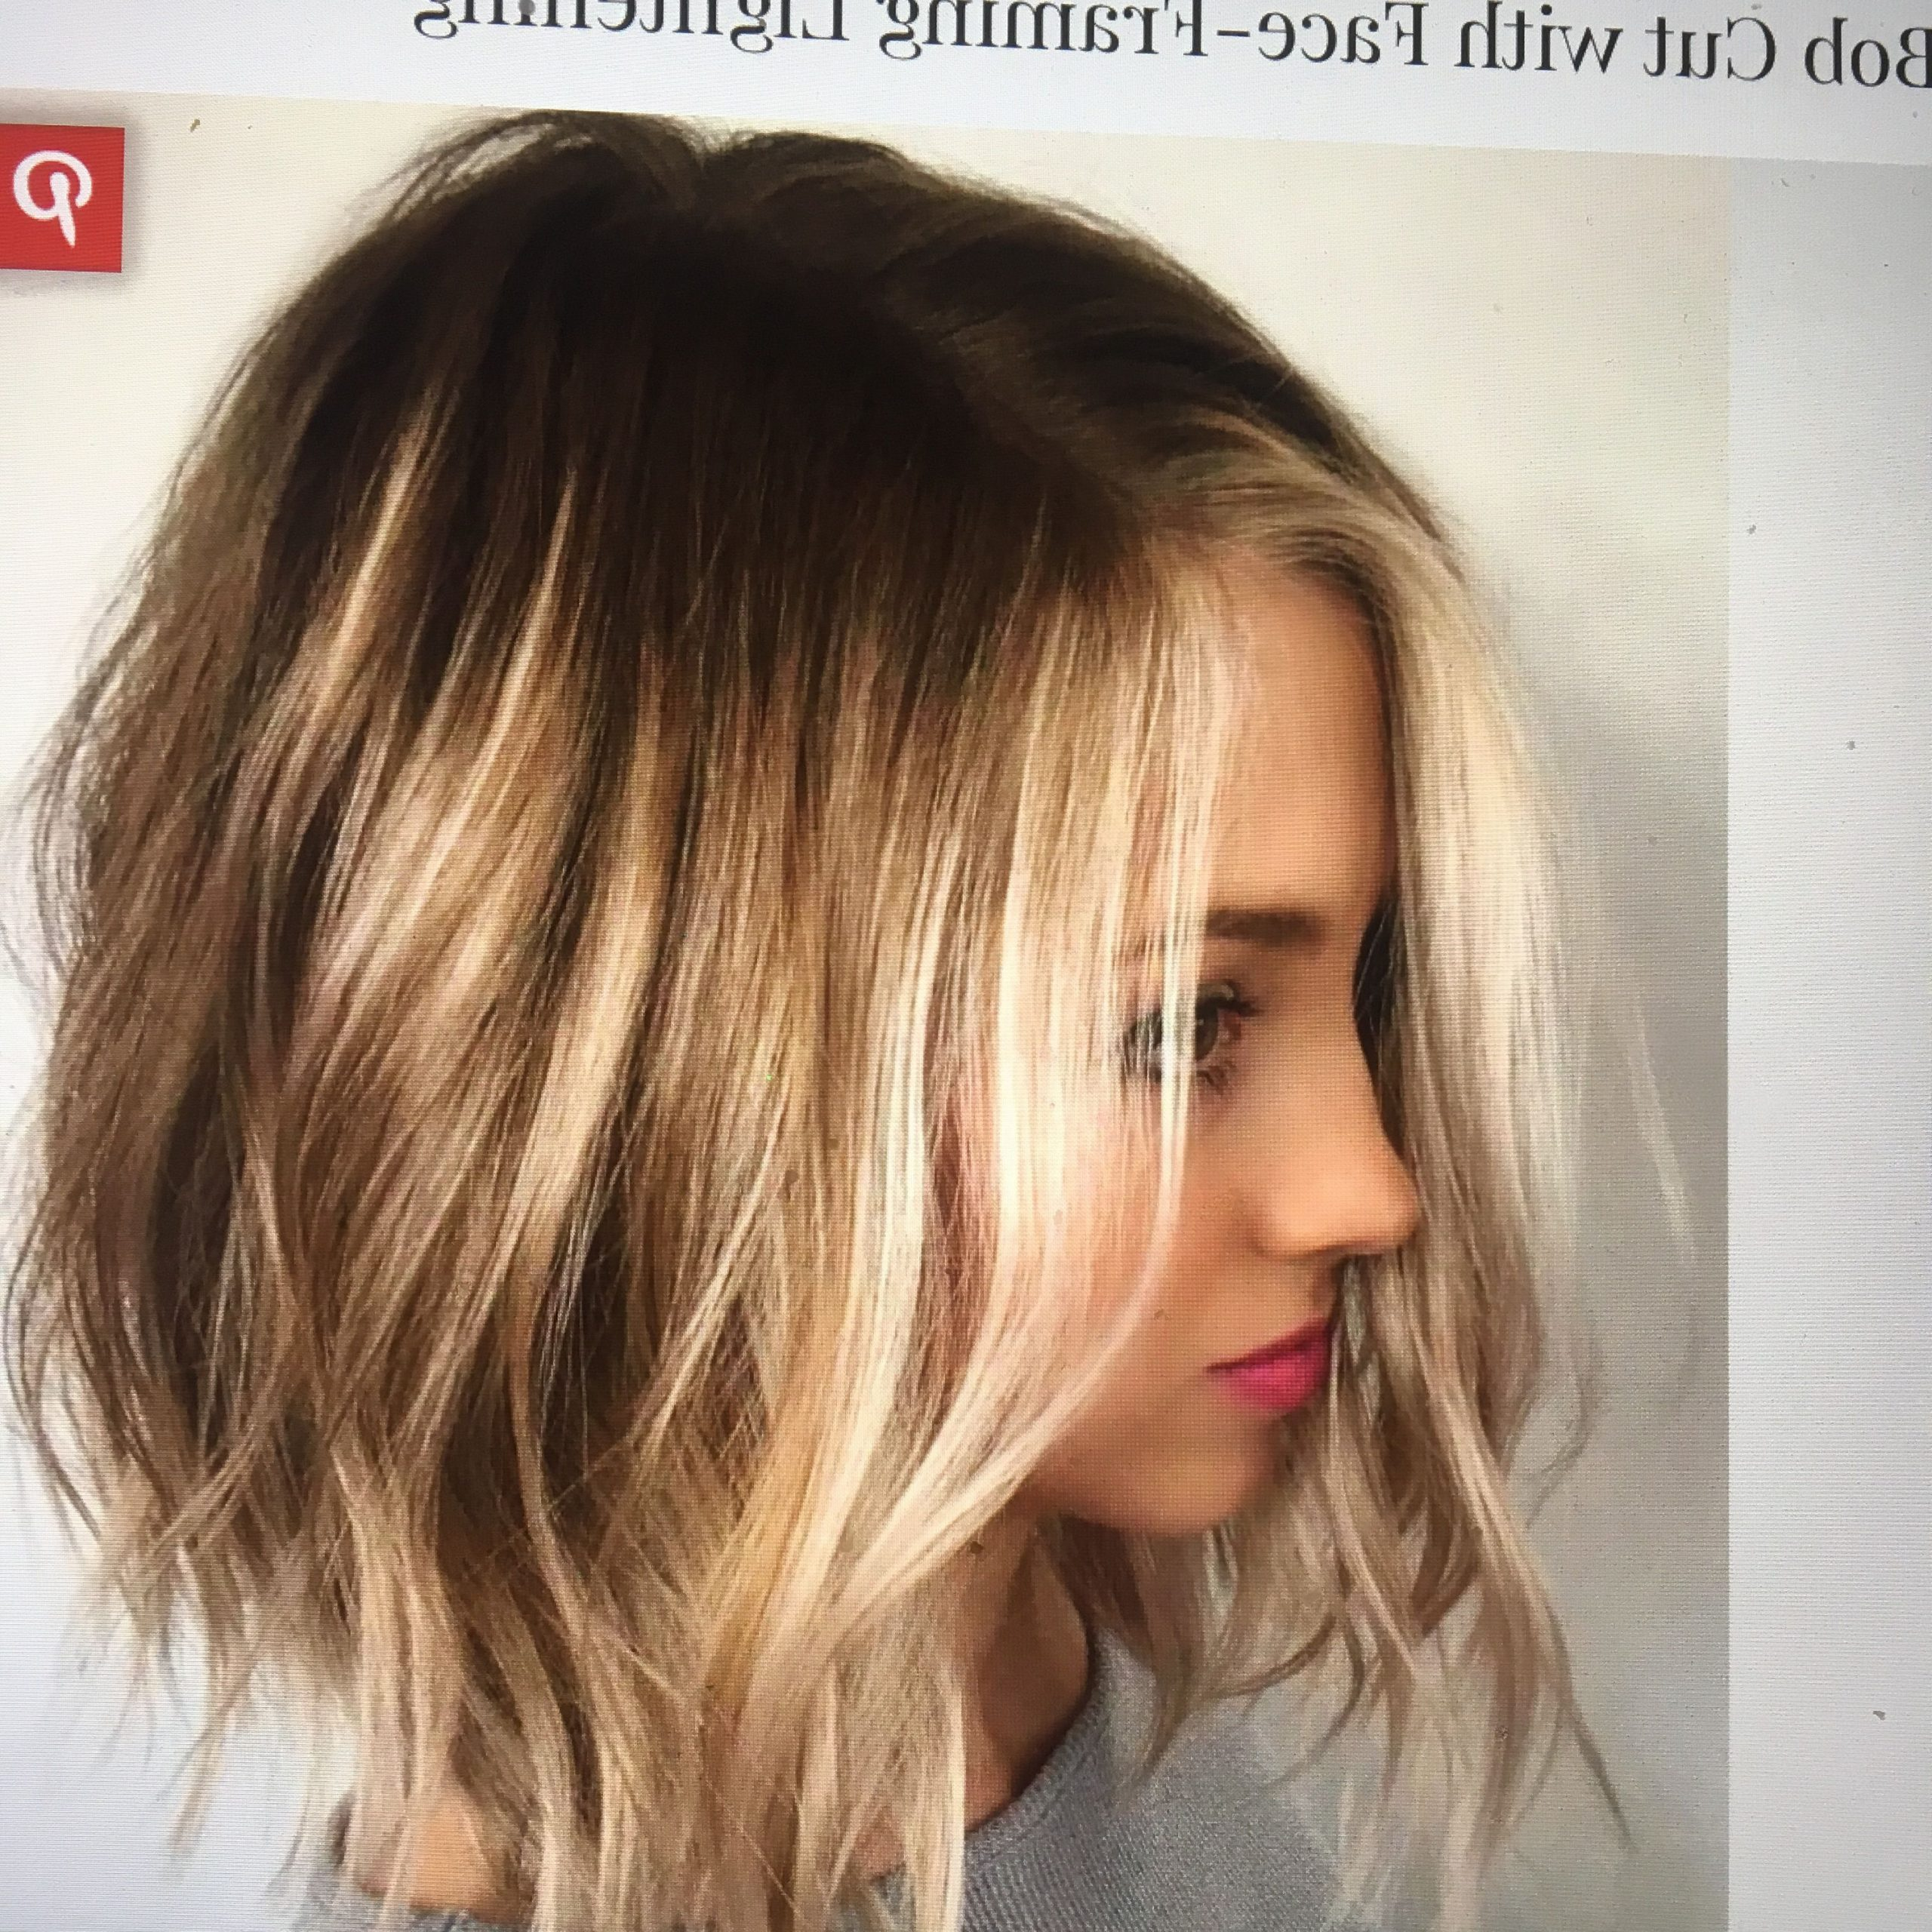 Fashion : Exceptional Choppy Cut Blonde Hairstyles With In Popular Choppy Bright Blonde Bob Hairstyles (View 15 of 20)